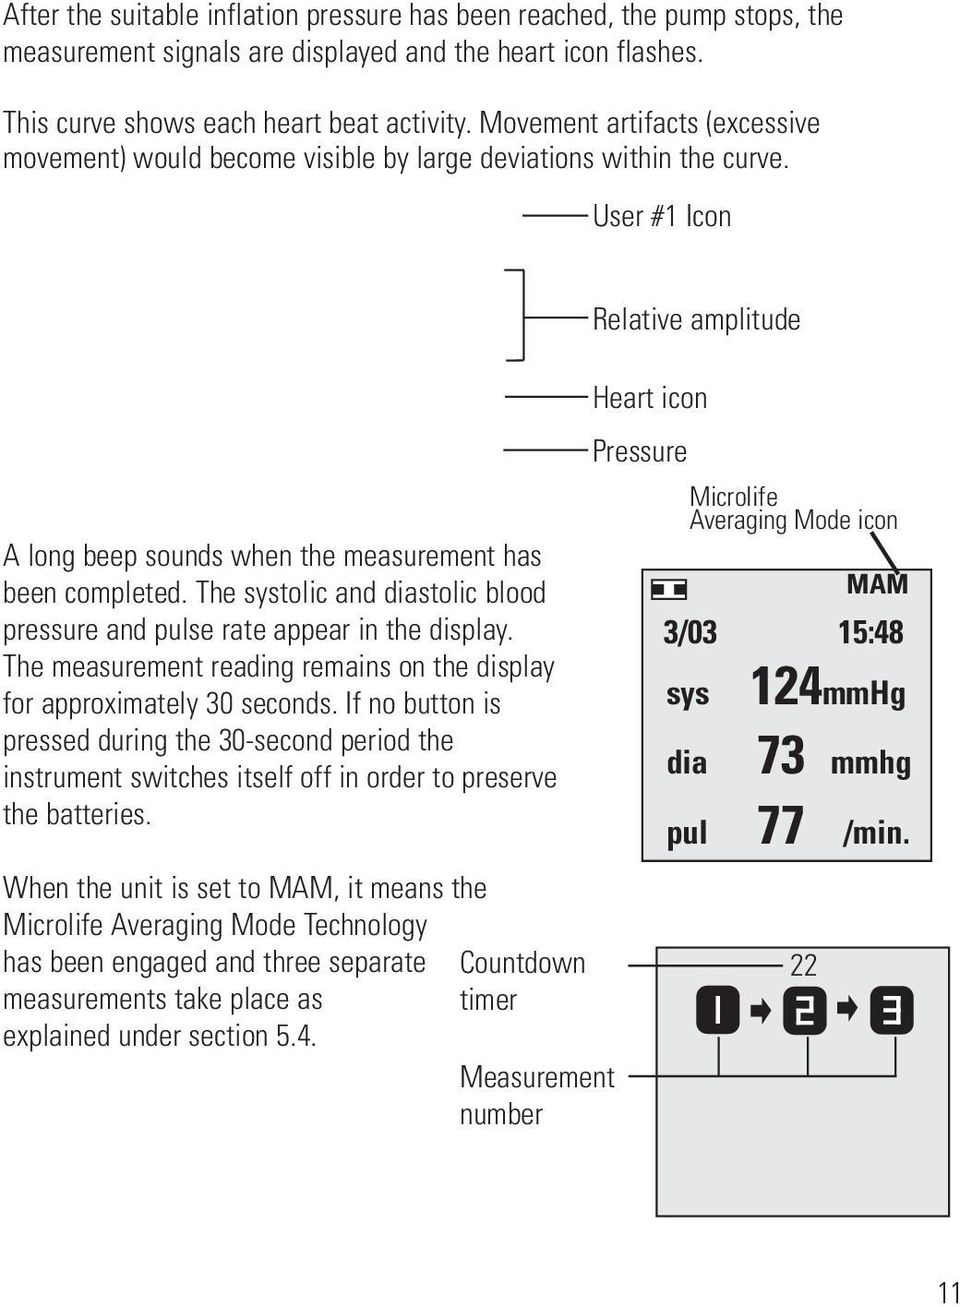 The systolic and diastolic blood pressure and pulse rate appear in the display. The measurement reading remains on the display for approximately 30 seconds.